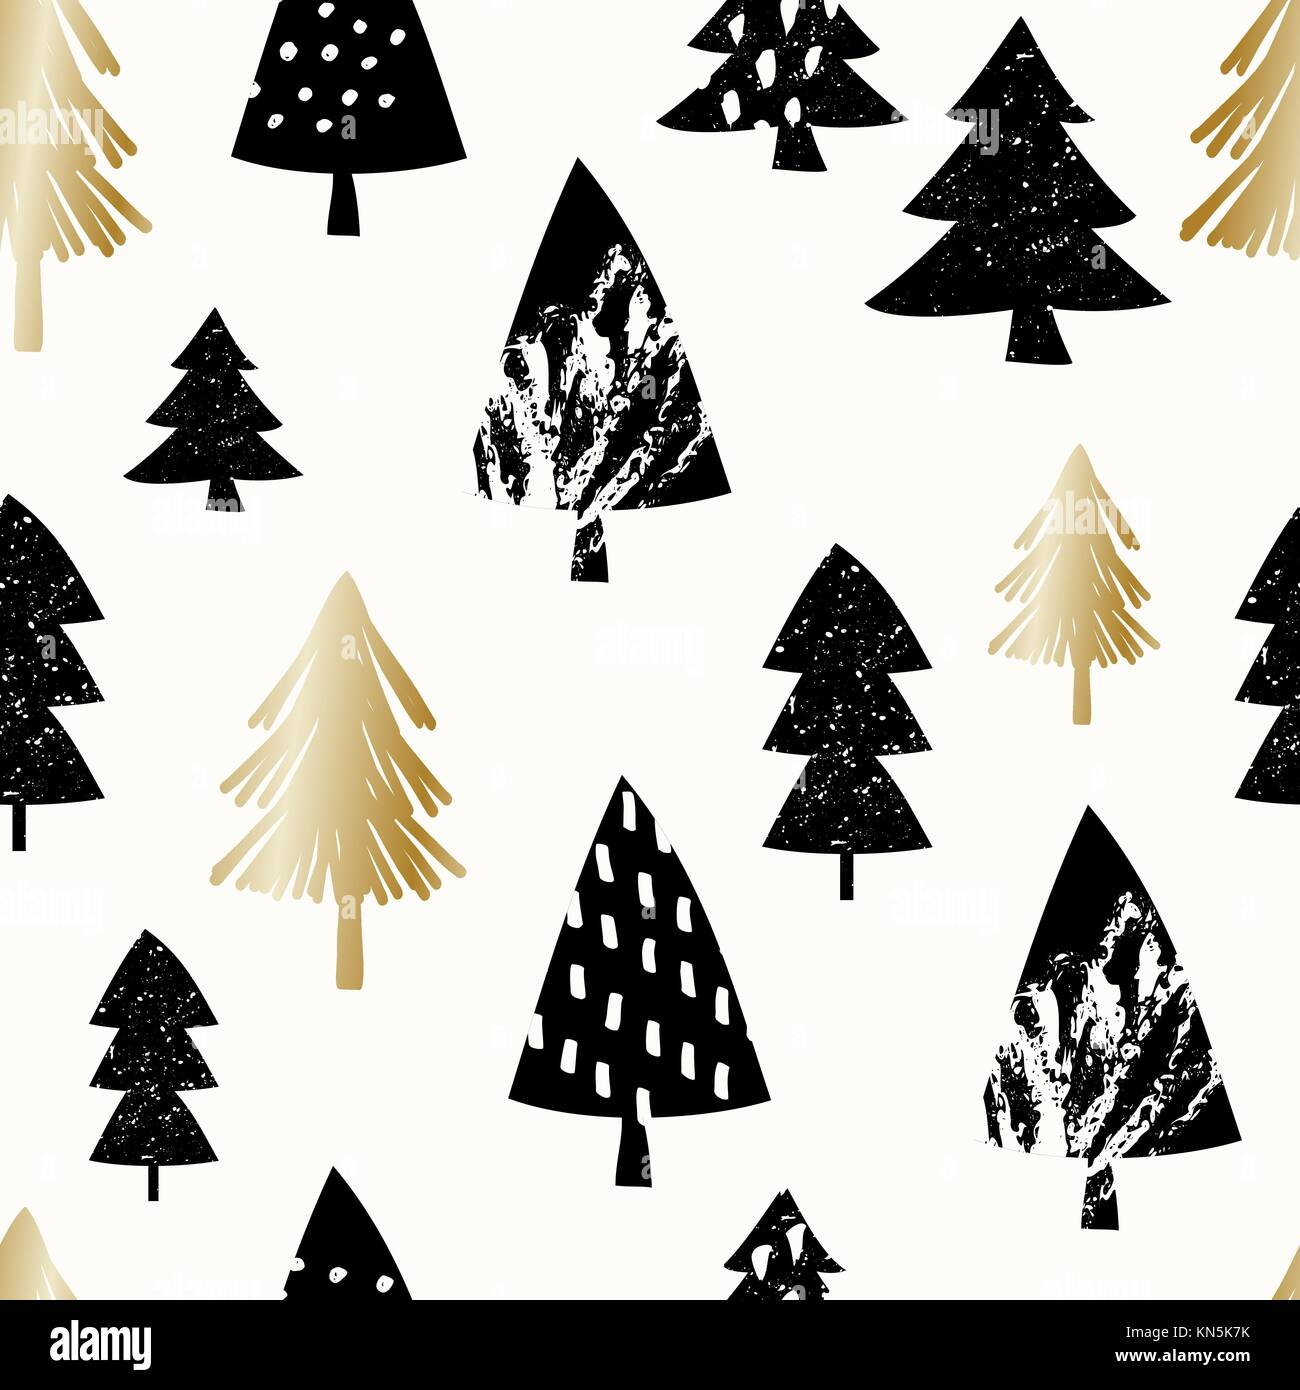 Seamless Repeating Pattern With Christmas Trees In Black And Gold On Stock Vector Image Art Alamy